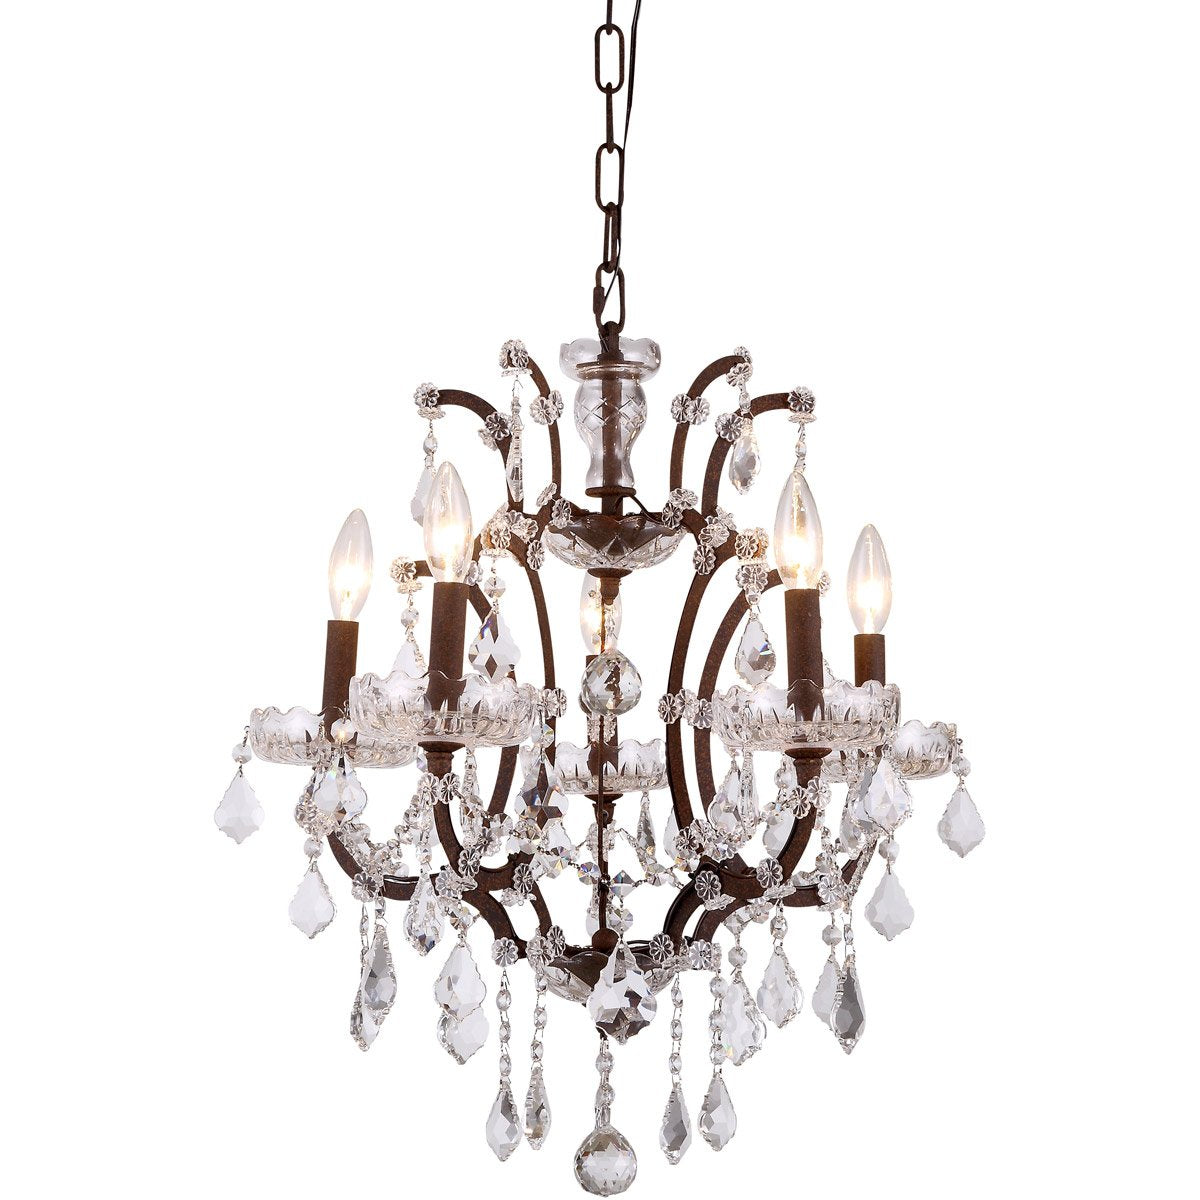 Elena 18 Crystal Mini Chandelier With 5 Lights - Rustic Intent Finish And Clear Crystal Chandelier